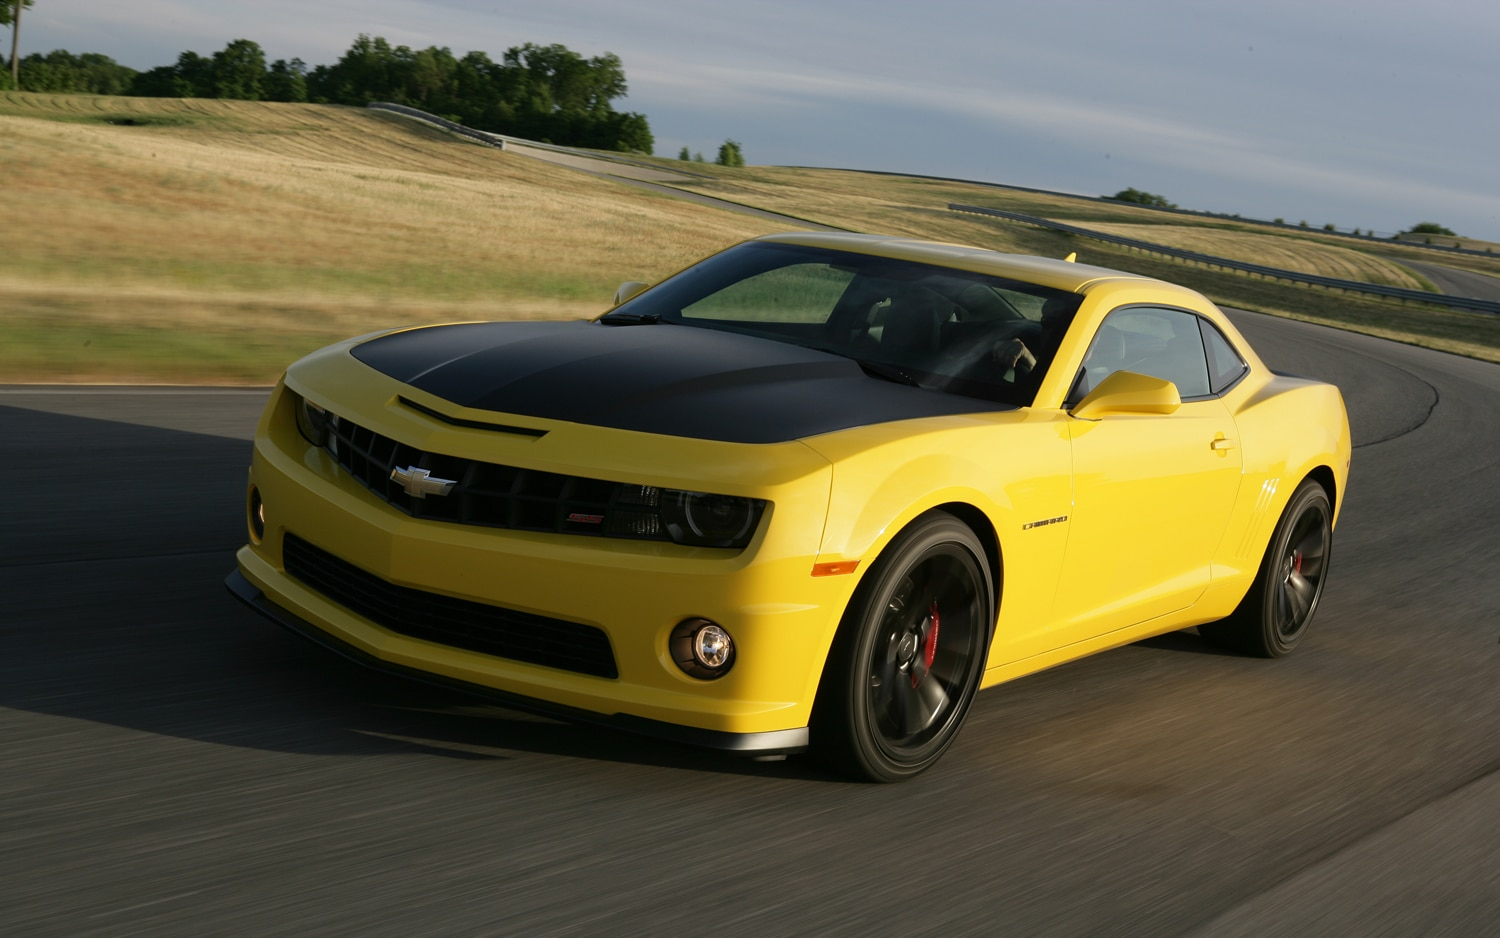 2013 Chevrolet Camaro 1LE Front Three Quarters In Motion 21